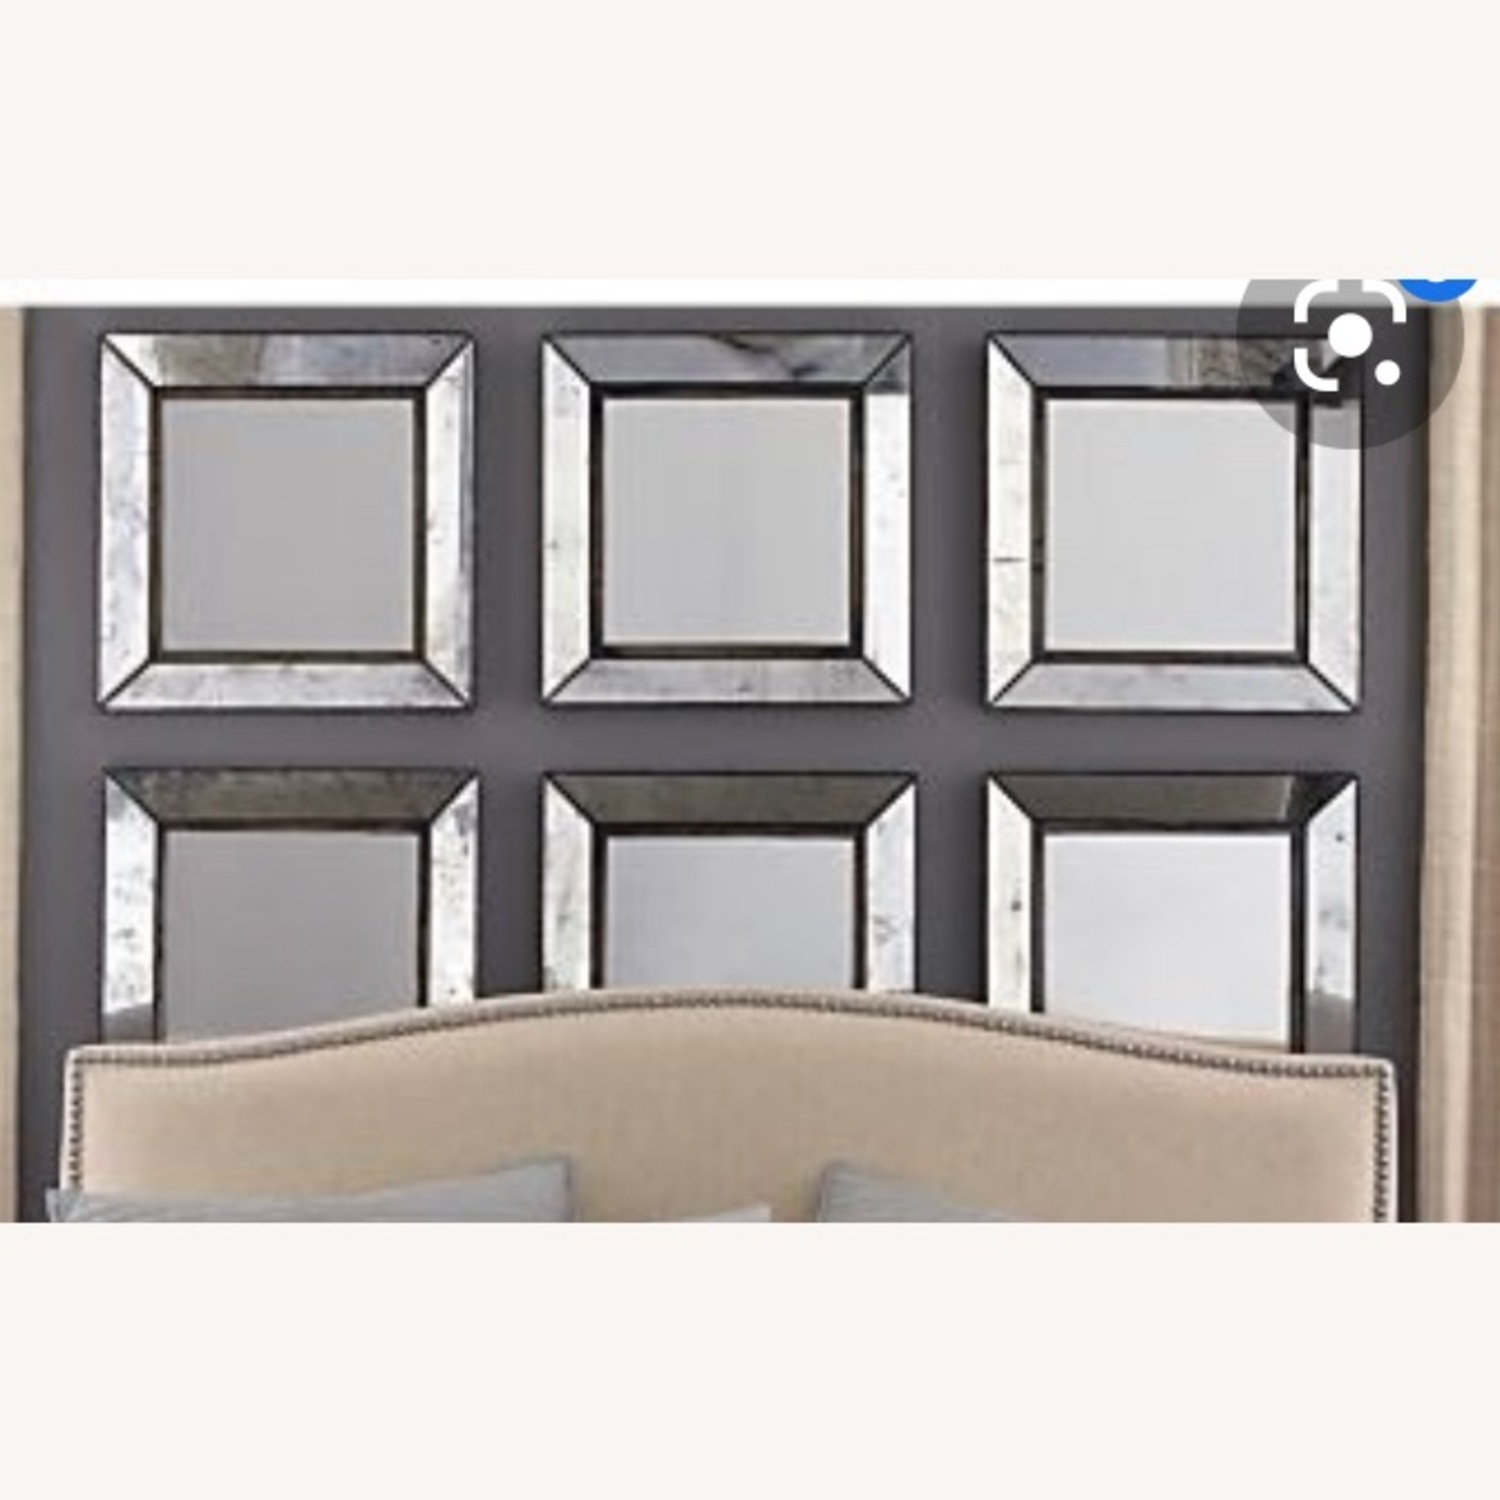 Crate and Barrel Dubois Mirror Set - image-2